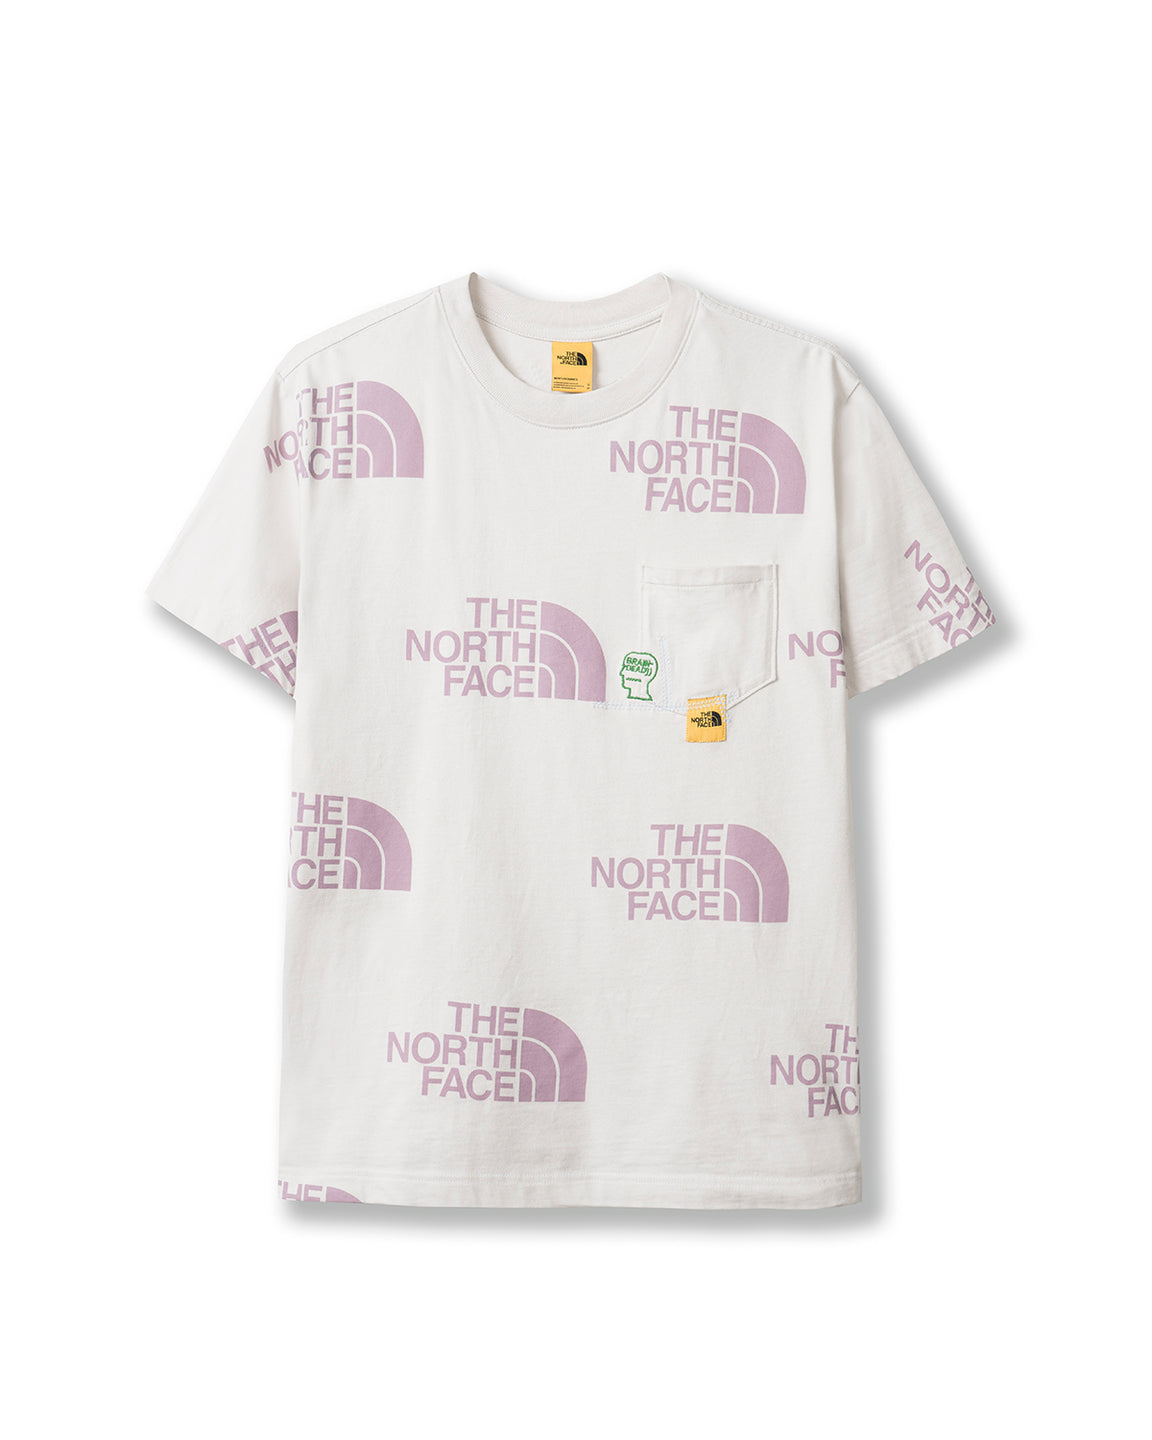 Brain Dead x The North Face Pocket T-shirt - Asphalt Grey